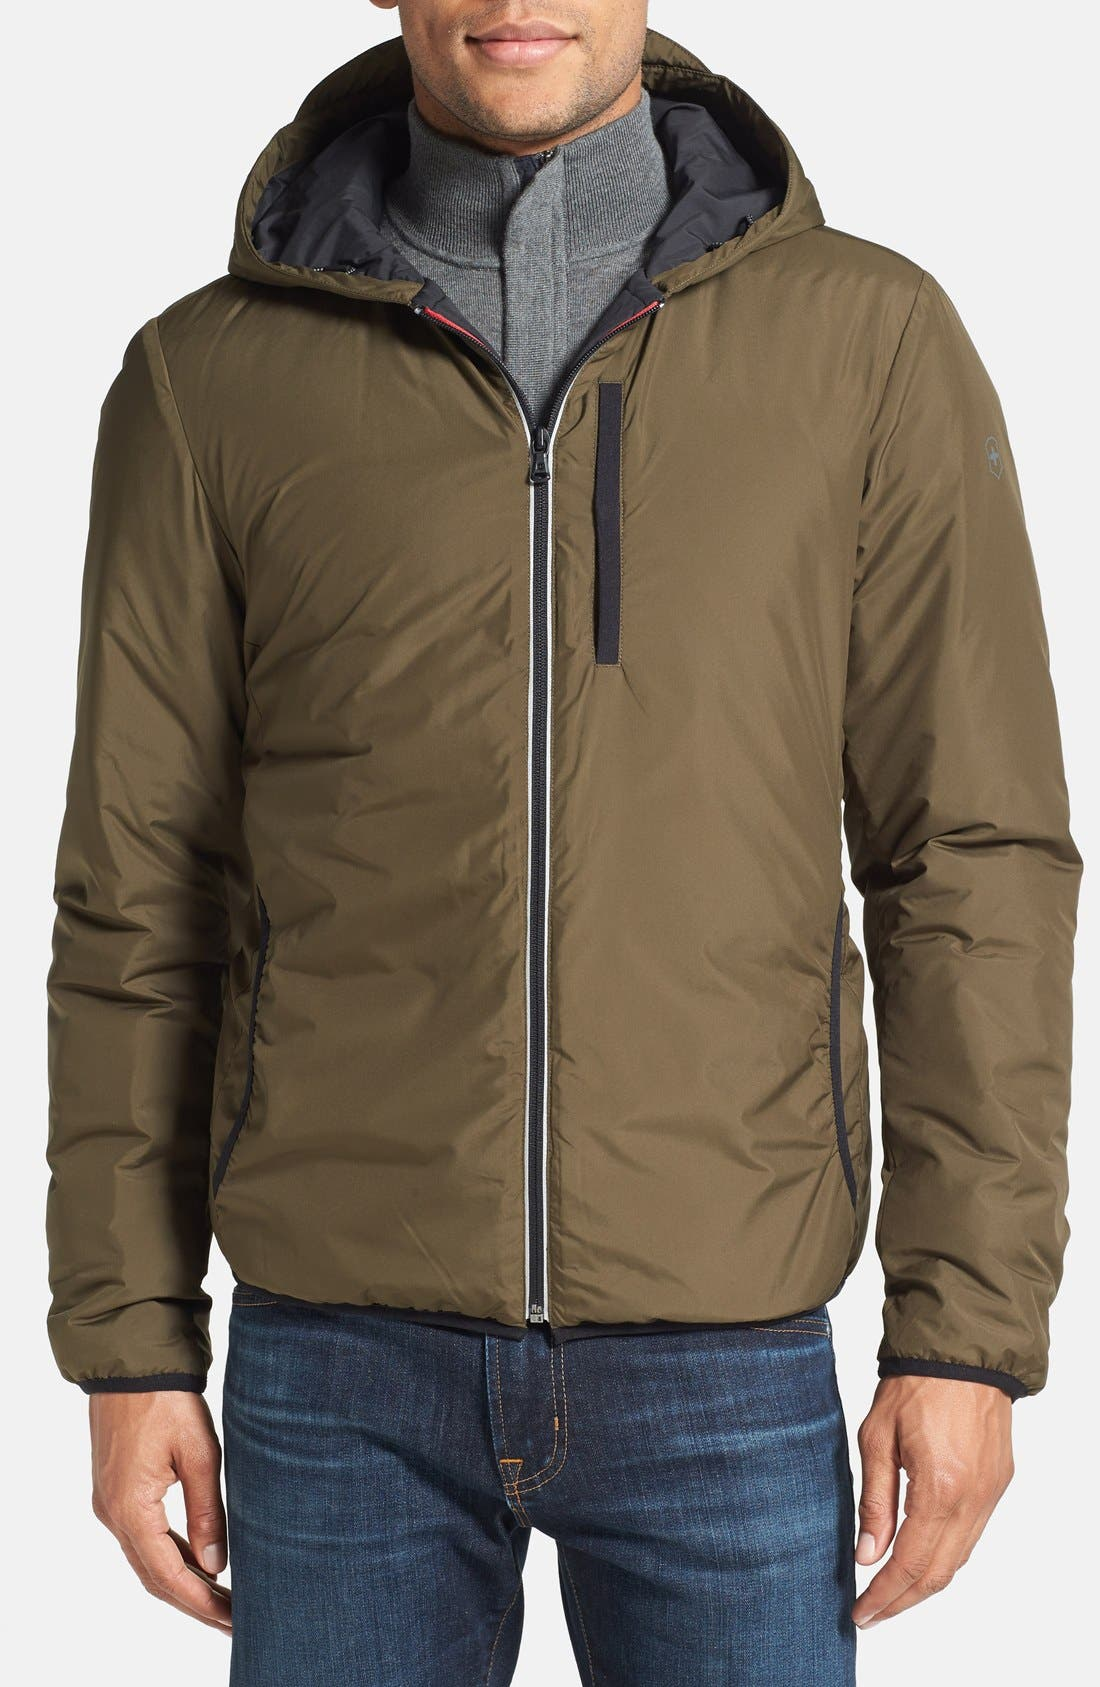 Alternate Image 1 Selected - Victorinox Swiss Army® 'Rigton' Thermore® Insulated Water Resistant Jacket